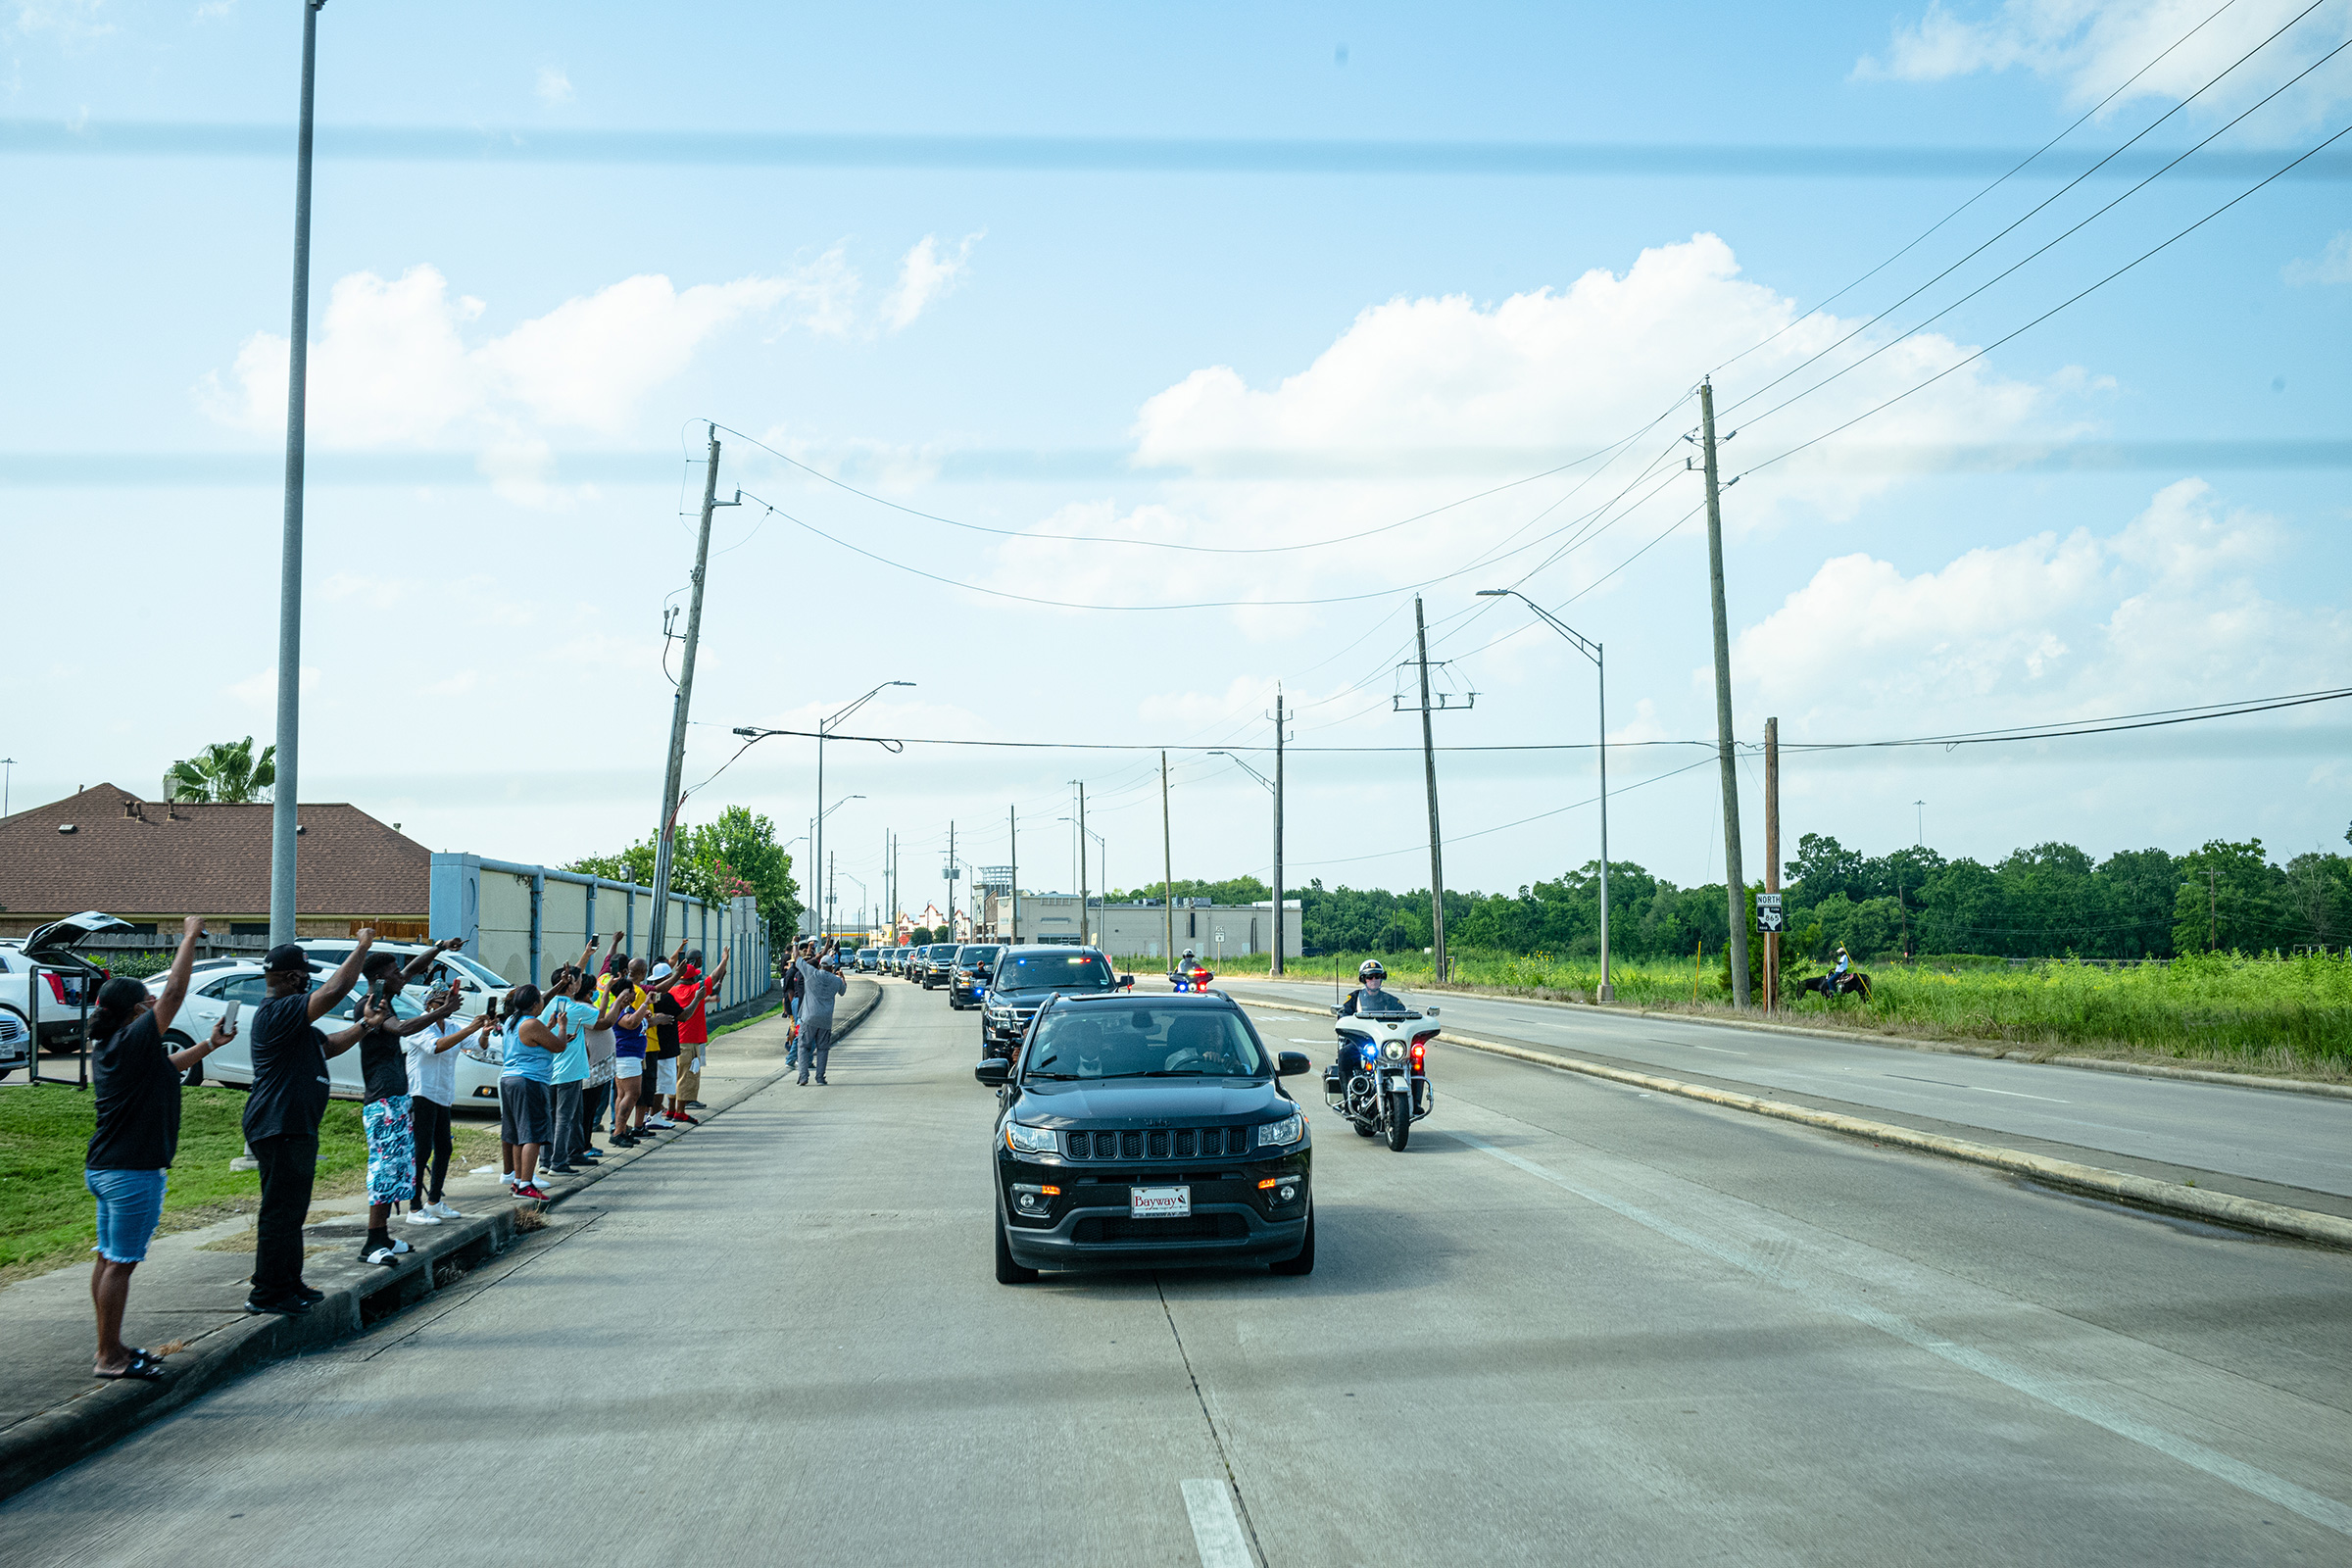 Supporters line up to see George Floyd's funeral procession on Jun 9.